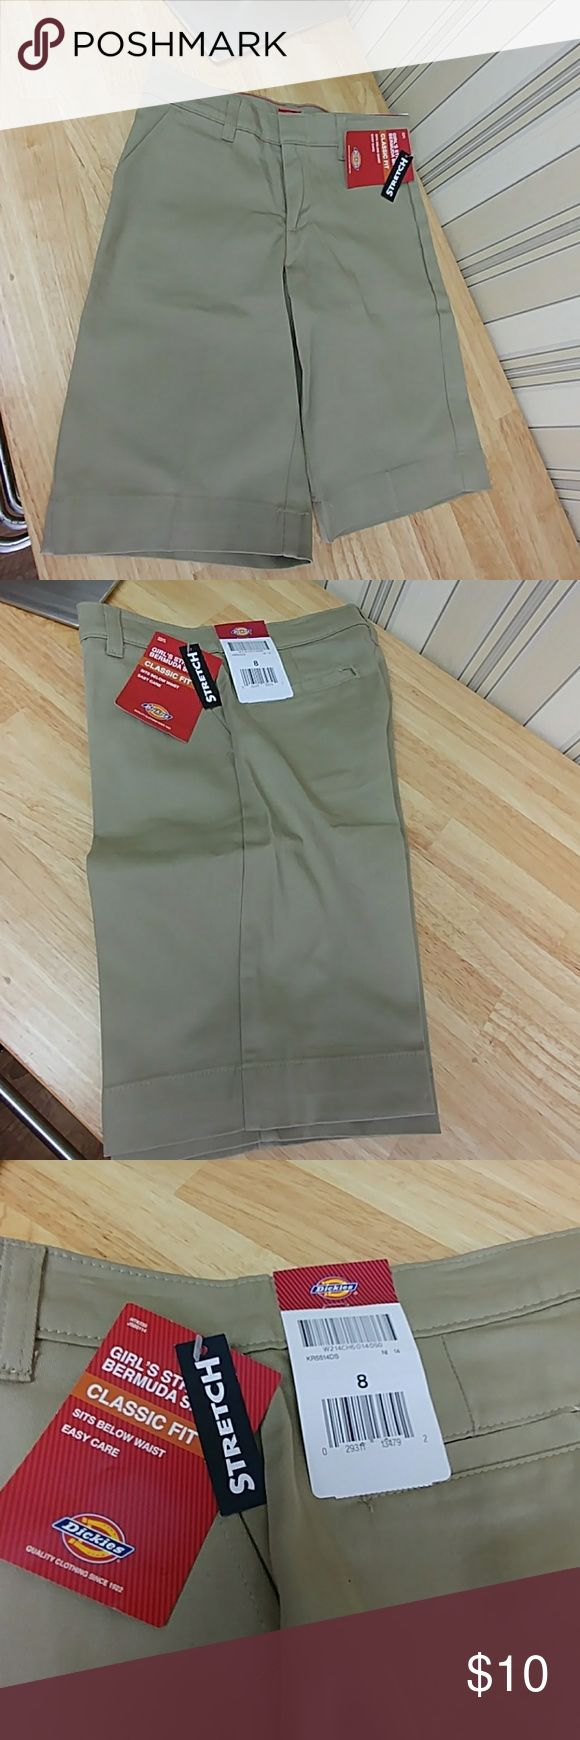 Girls' Classic Fit Bermuda Stretch Twill Short Dickies Girls Stretch Bermunda Shorts, size 8⃣, color beige, sits slightly below the waist, classic fit through seat & thigh, made of 7.3 oz. Twill, 98% Cotton/2% Spandex, long inseam, Stretch fabric, back welt pockets, front  pockets, metal and hook up closure, no exterior logo, compare $18.99 retail price value, comes new with tag as closeout merchandise in good cosmetic condition. Dickies Bottoms Shorts